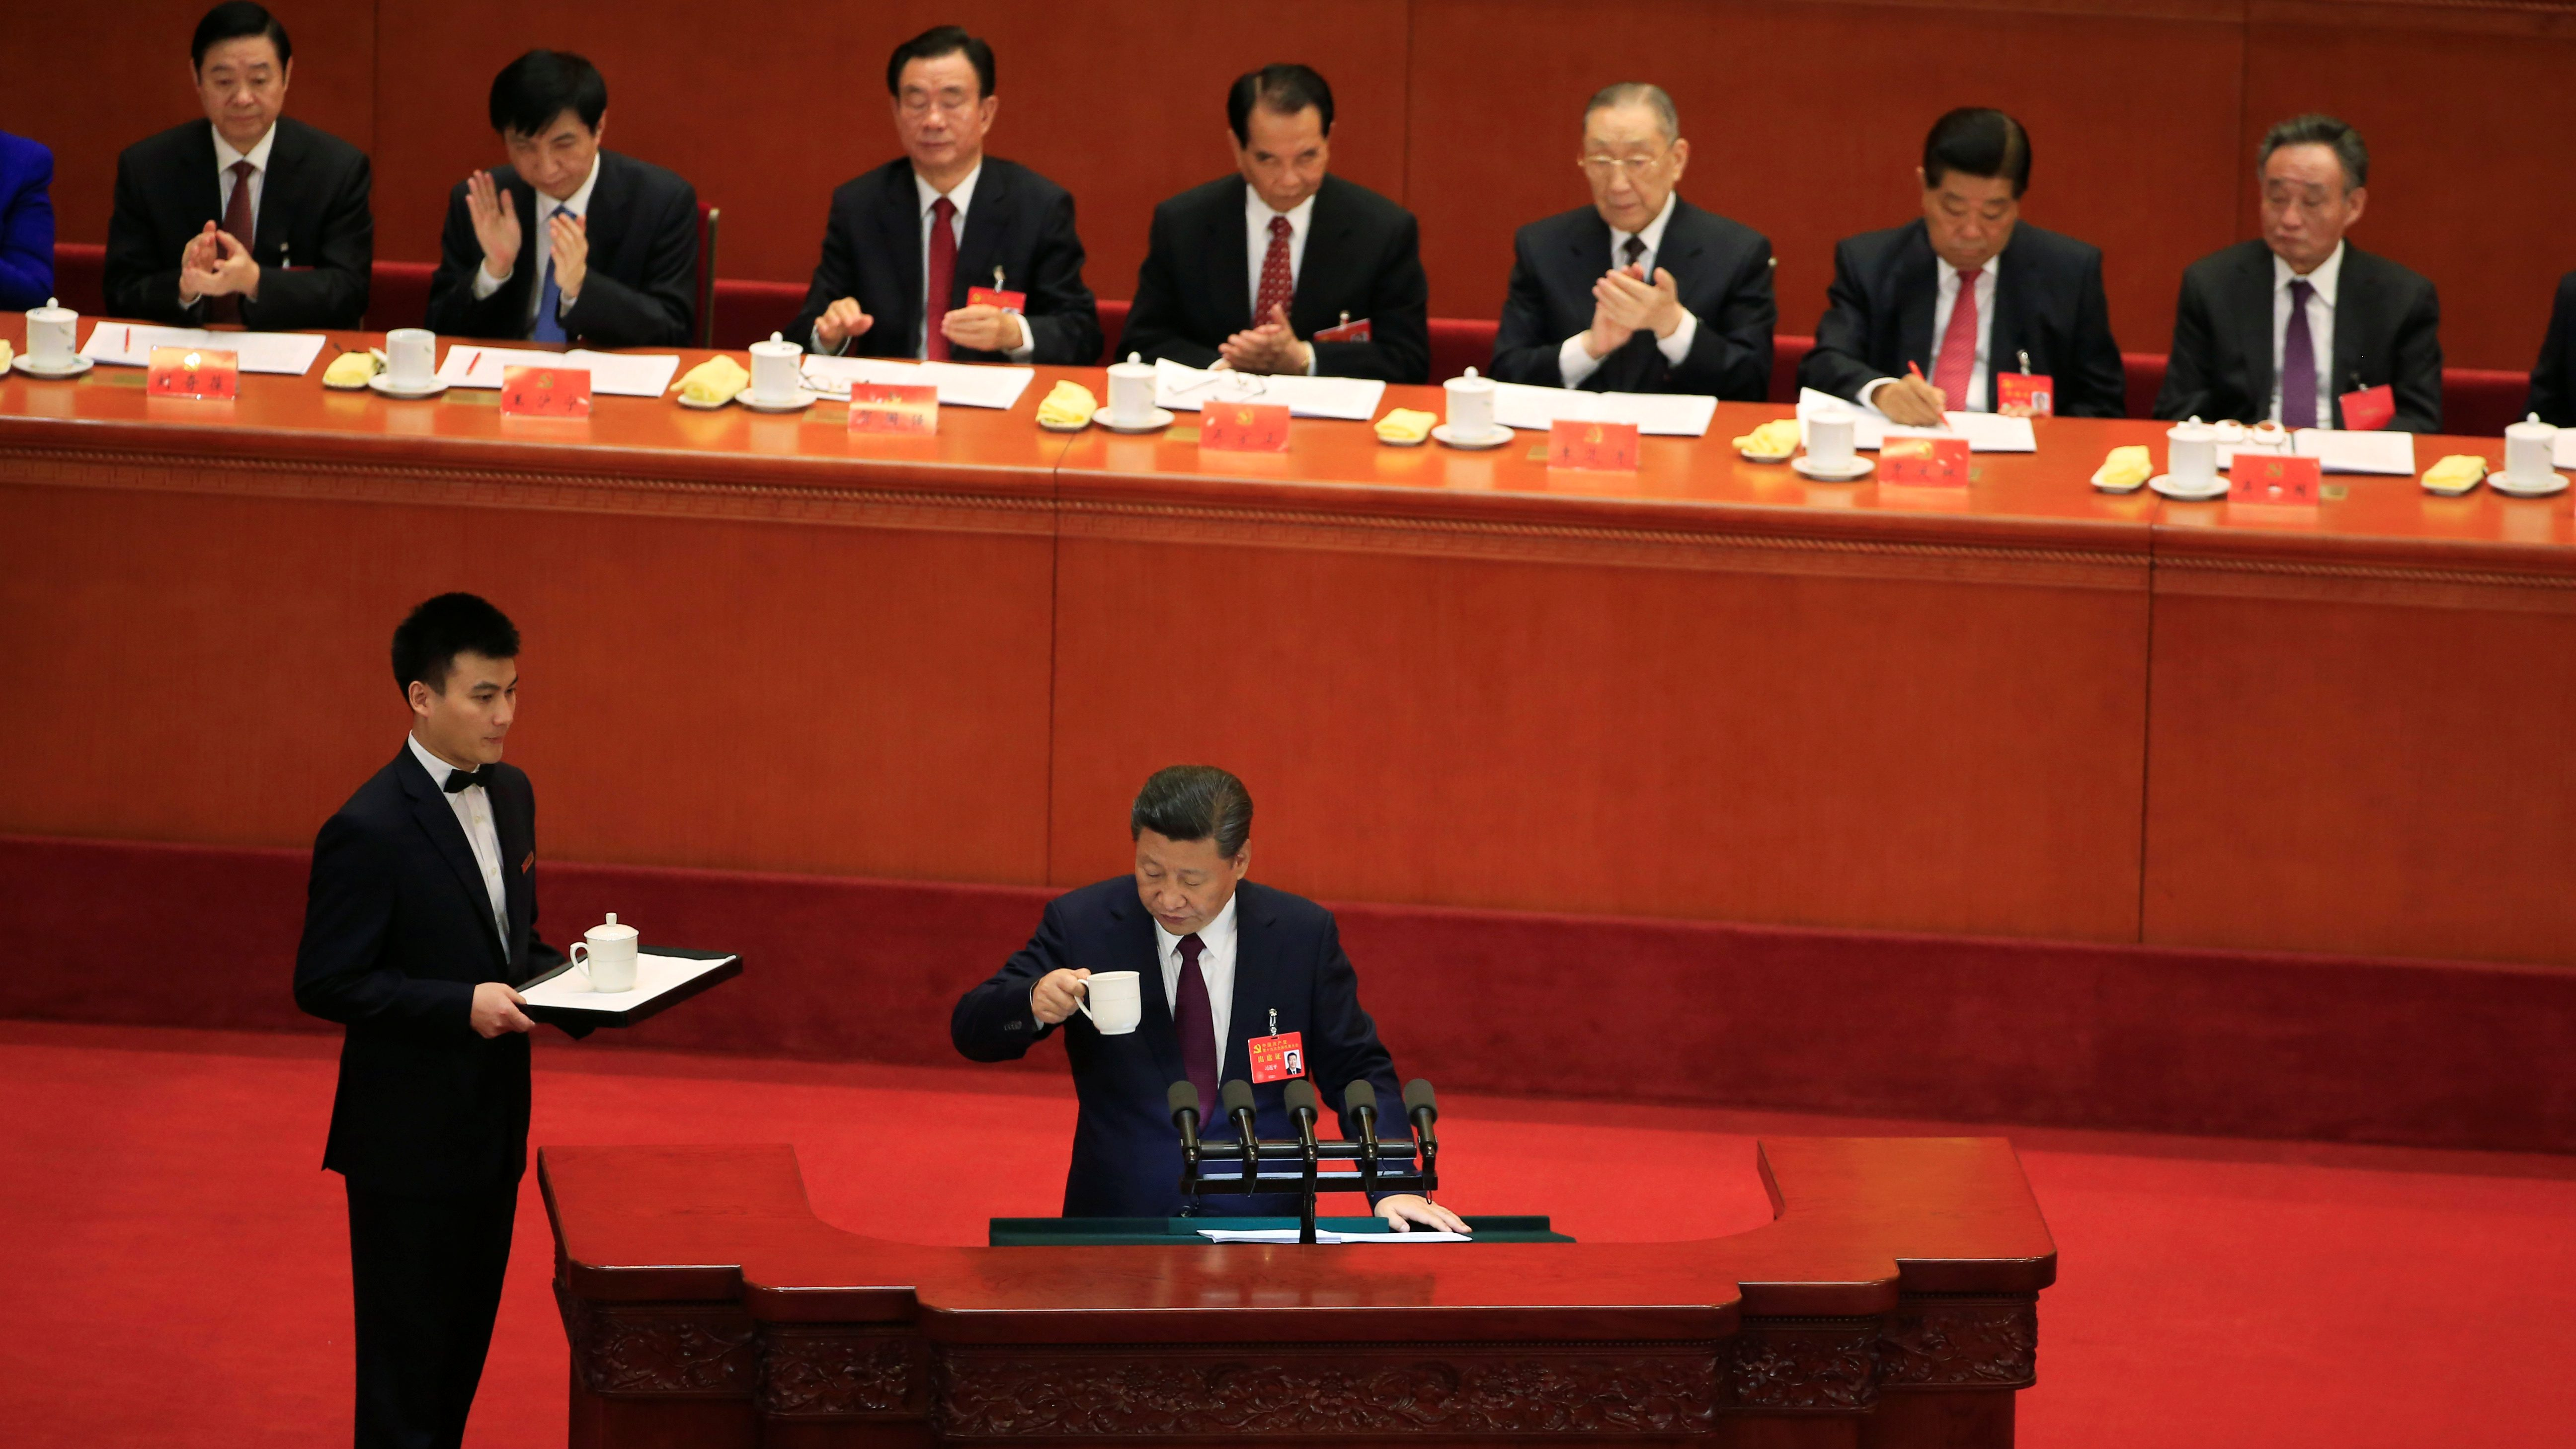 Chinese President Xi Jinping is served tea as he delivers a speech during the opening session of the 19th National Congress of the Communist Party of China at the Great Hall of the People in Beijing, China October 18, 2017.